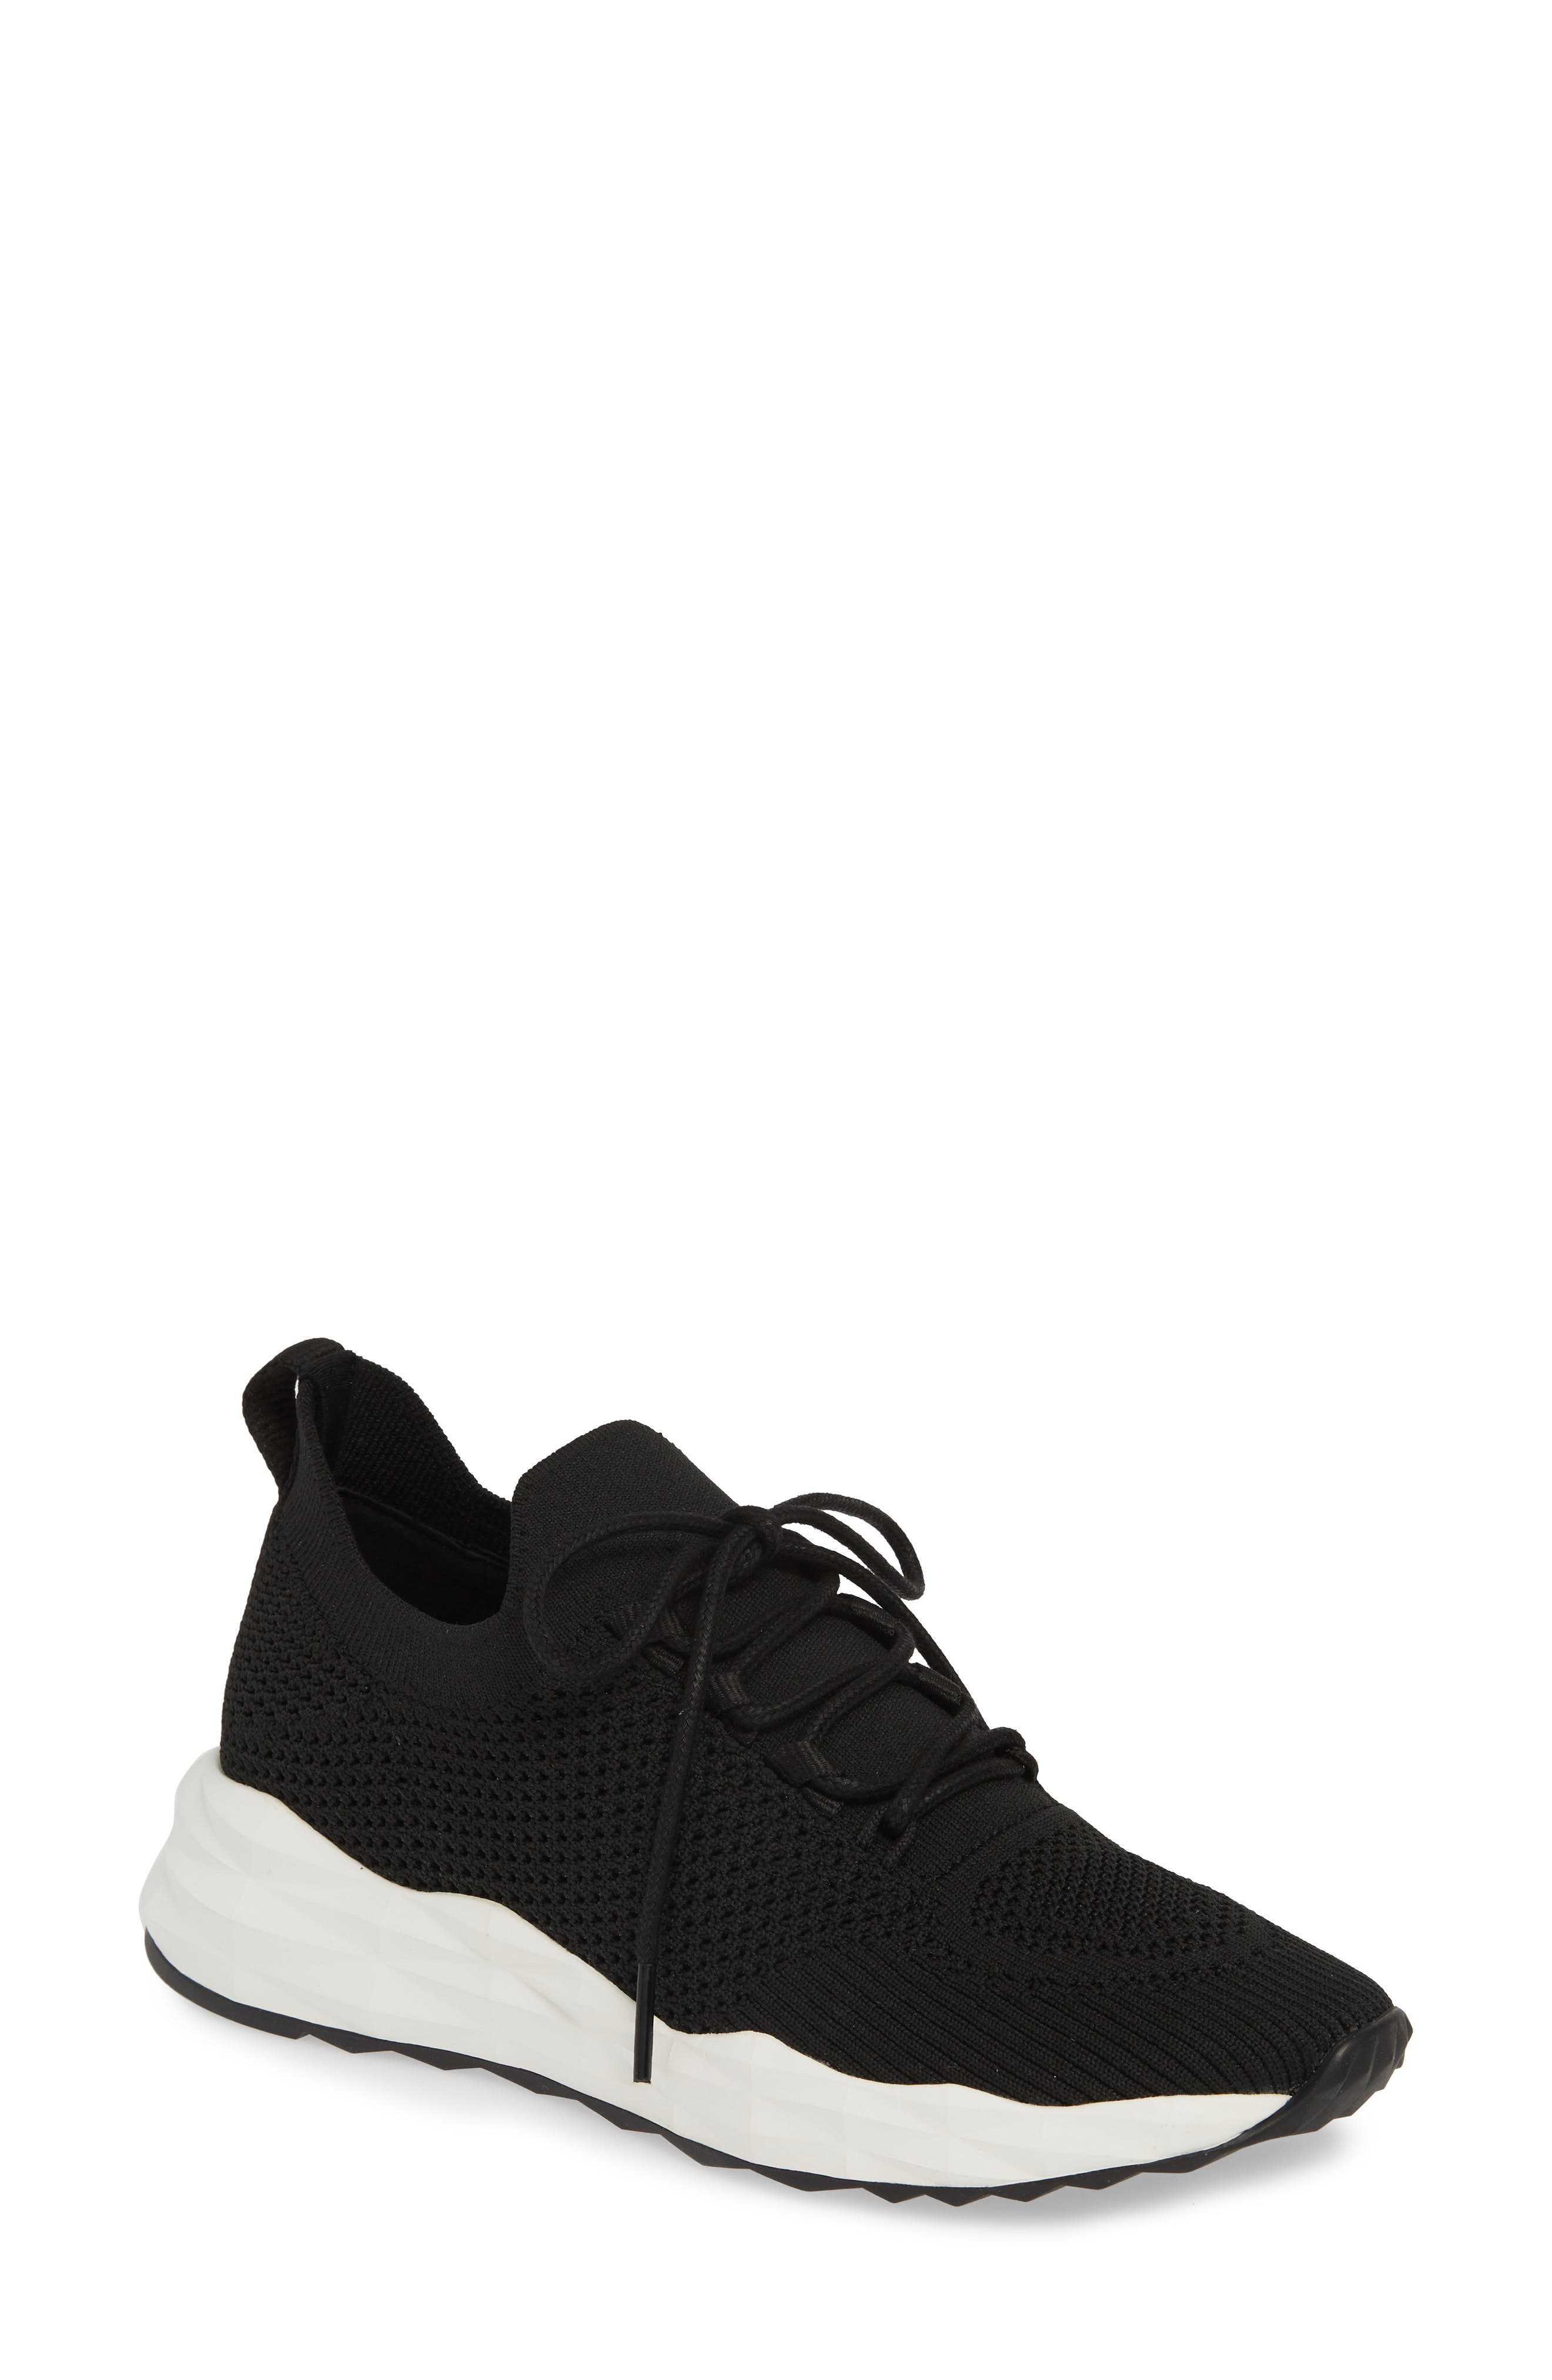 ASH Knit Skate Sneaker, Main, color, BLACK/ BLACK